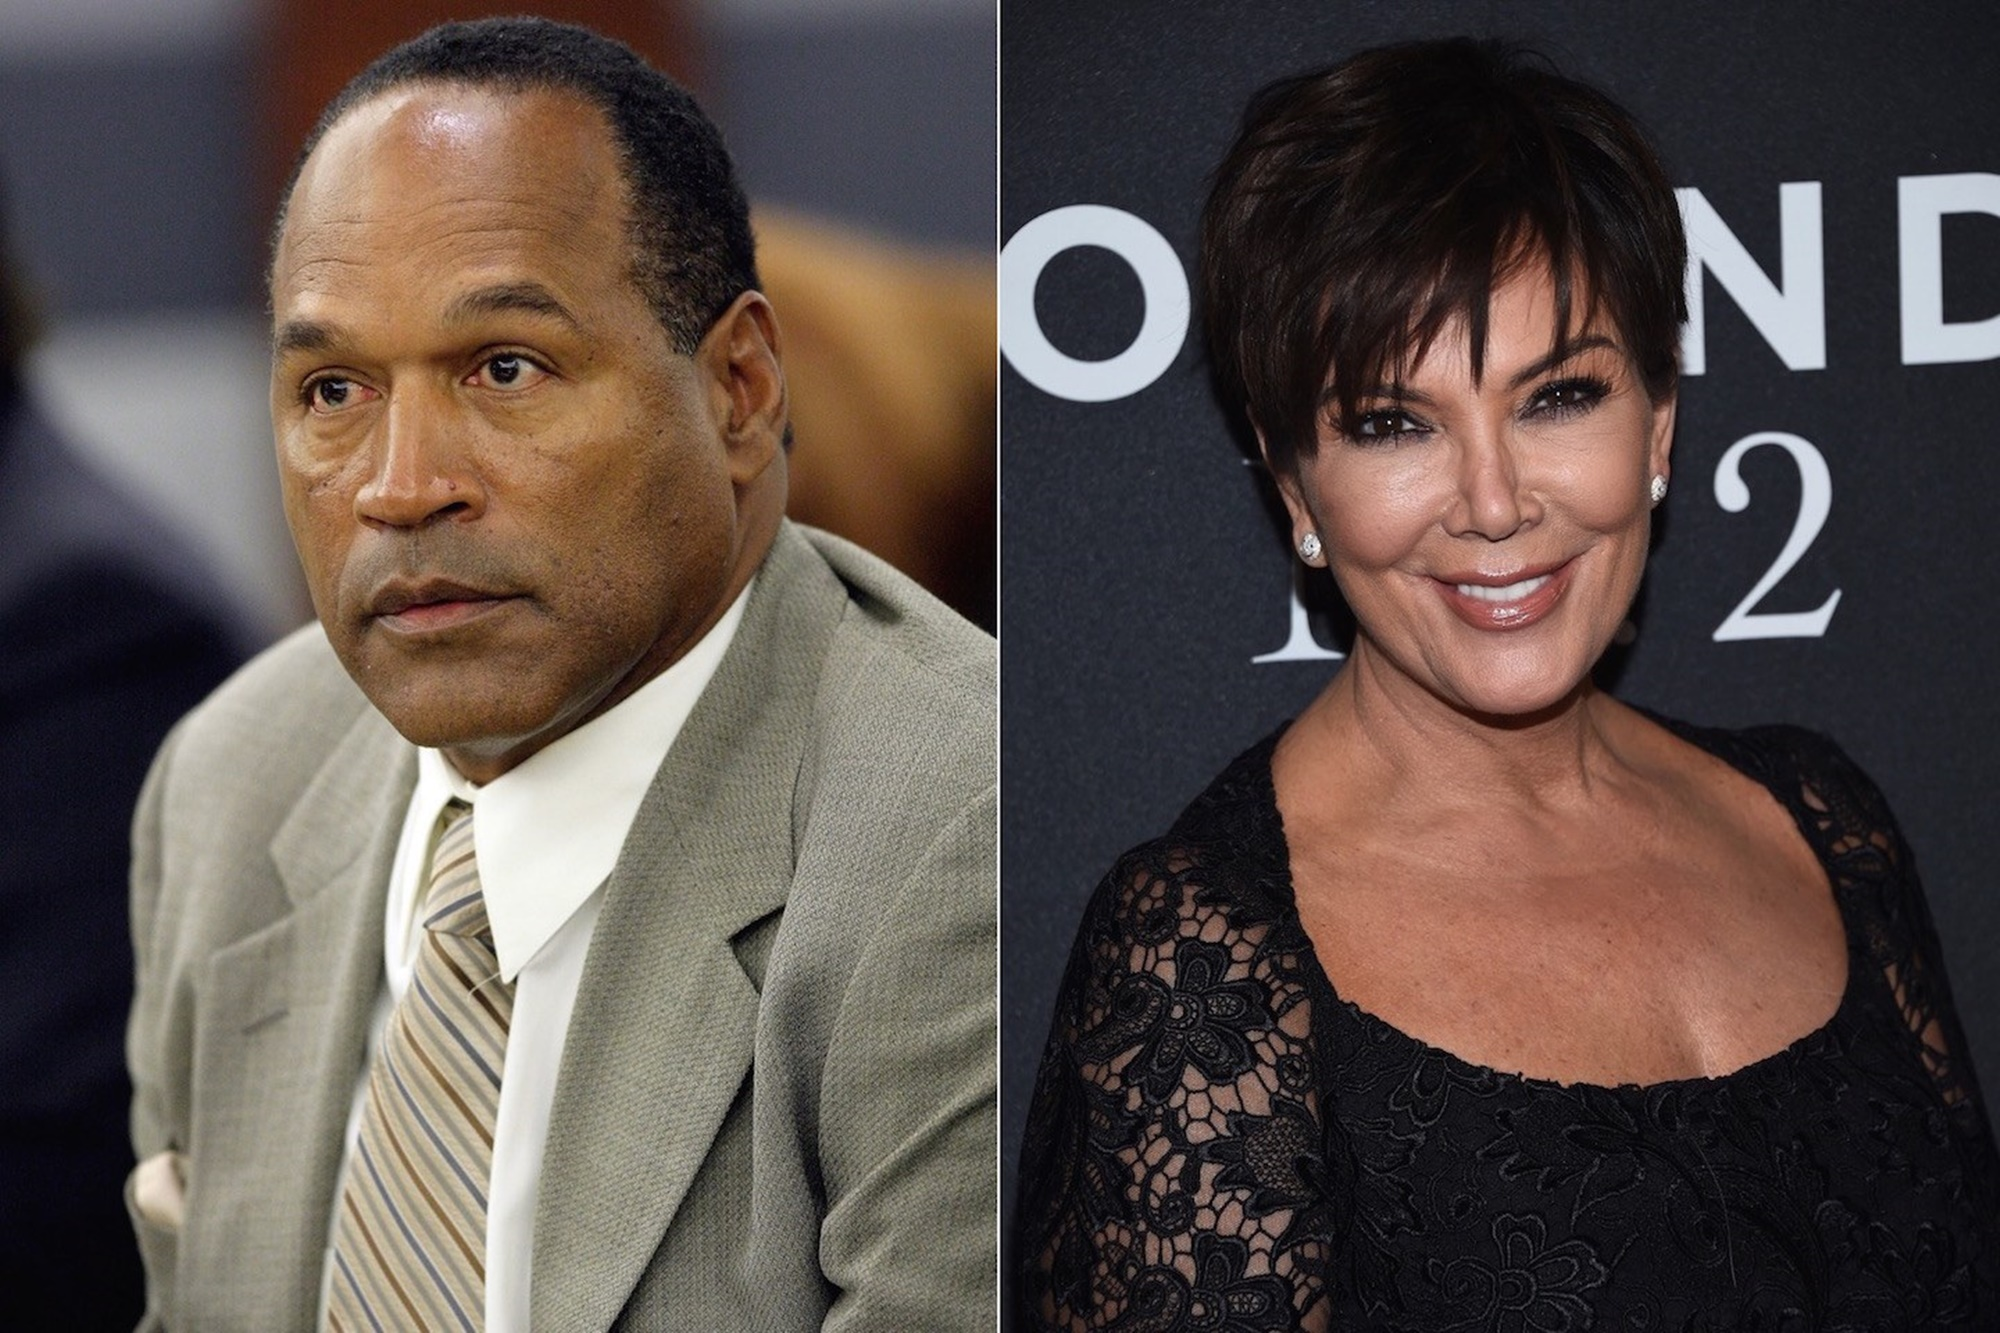 o-j-simpson-says-he-hooked-up-with-kris-jenner-will-this-re-ignite-the-rumors-about-khloe-kardashians-father